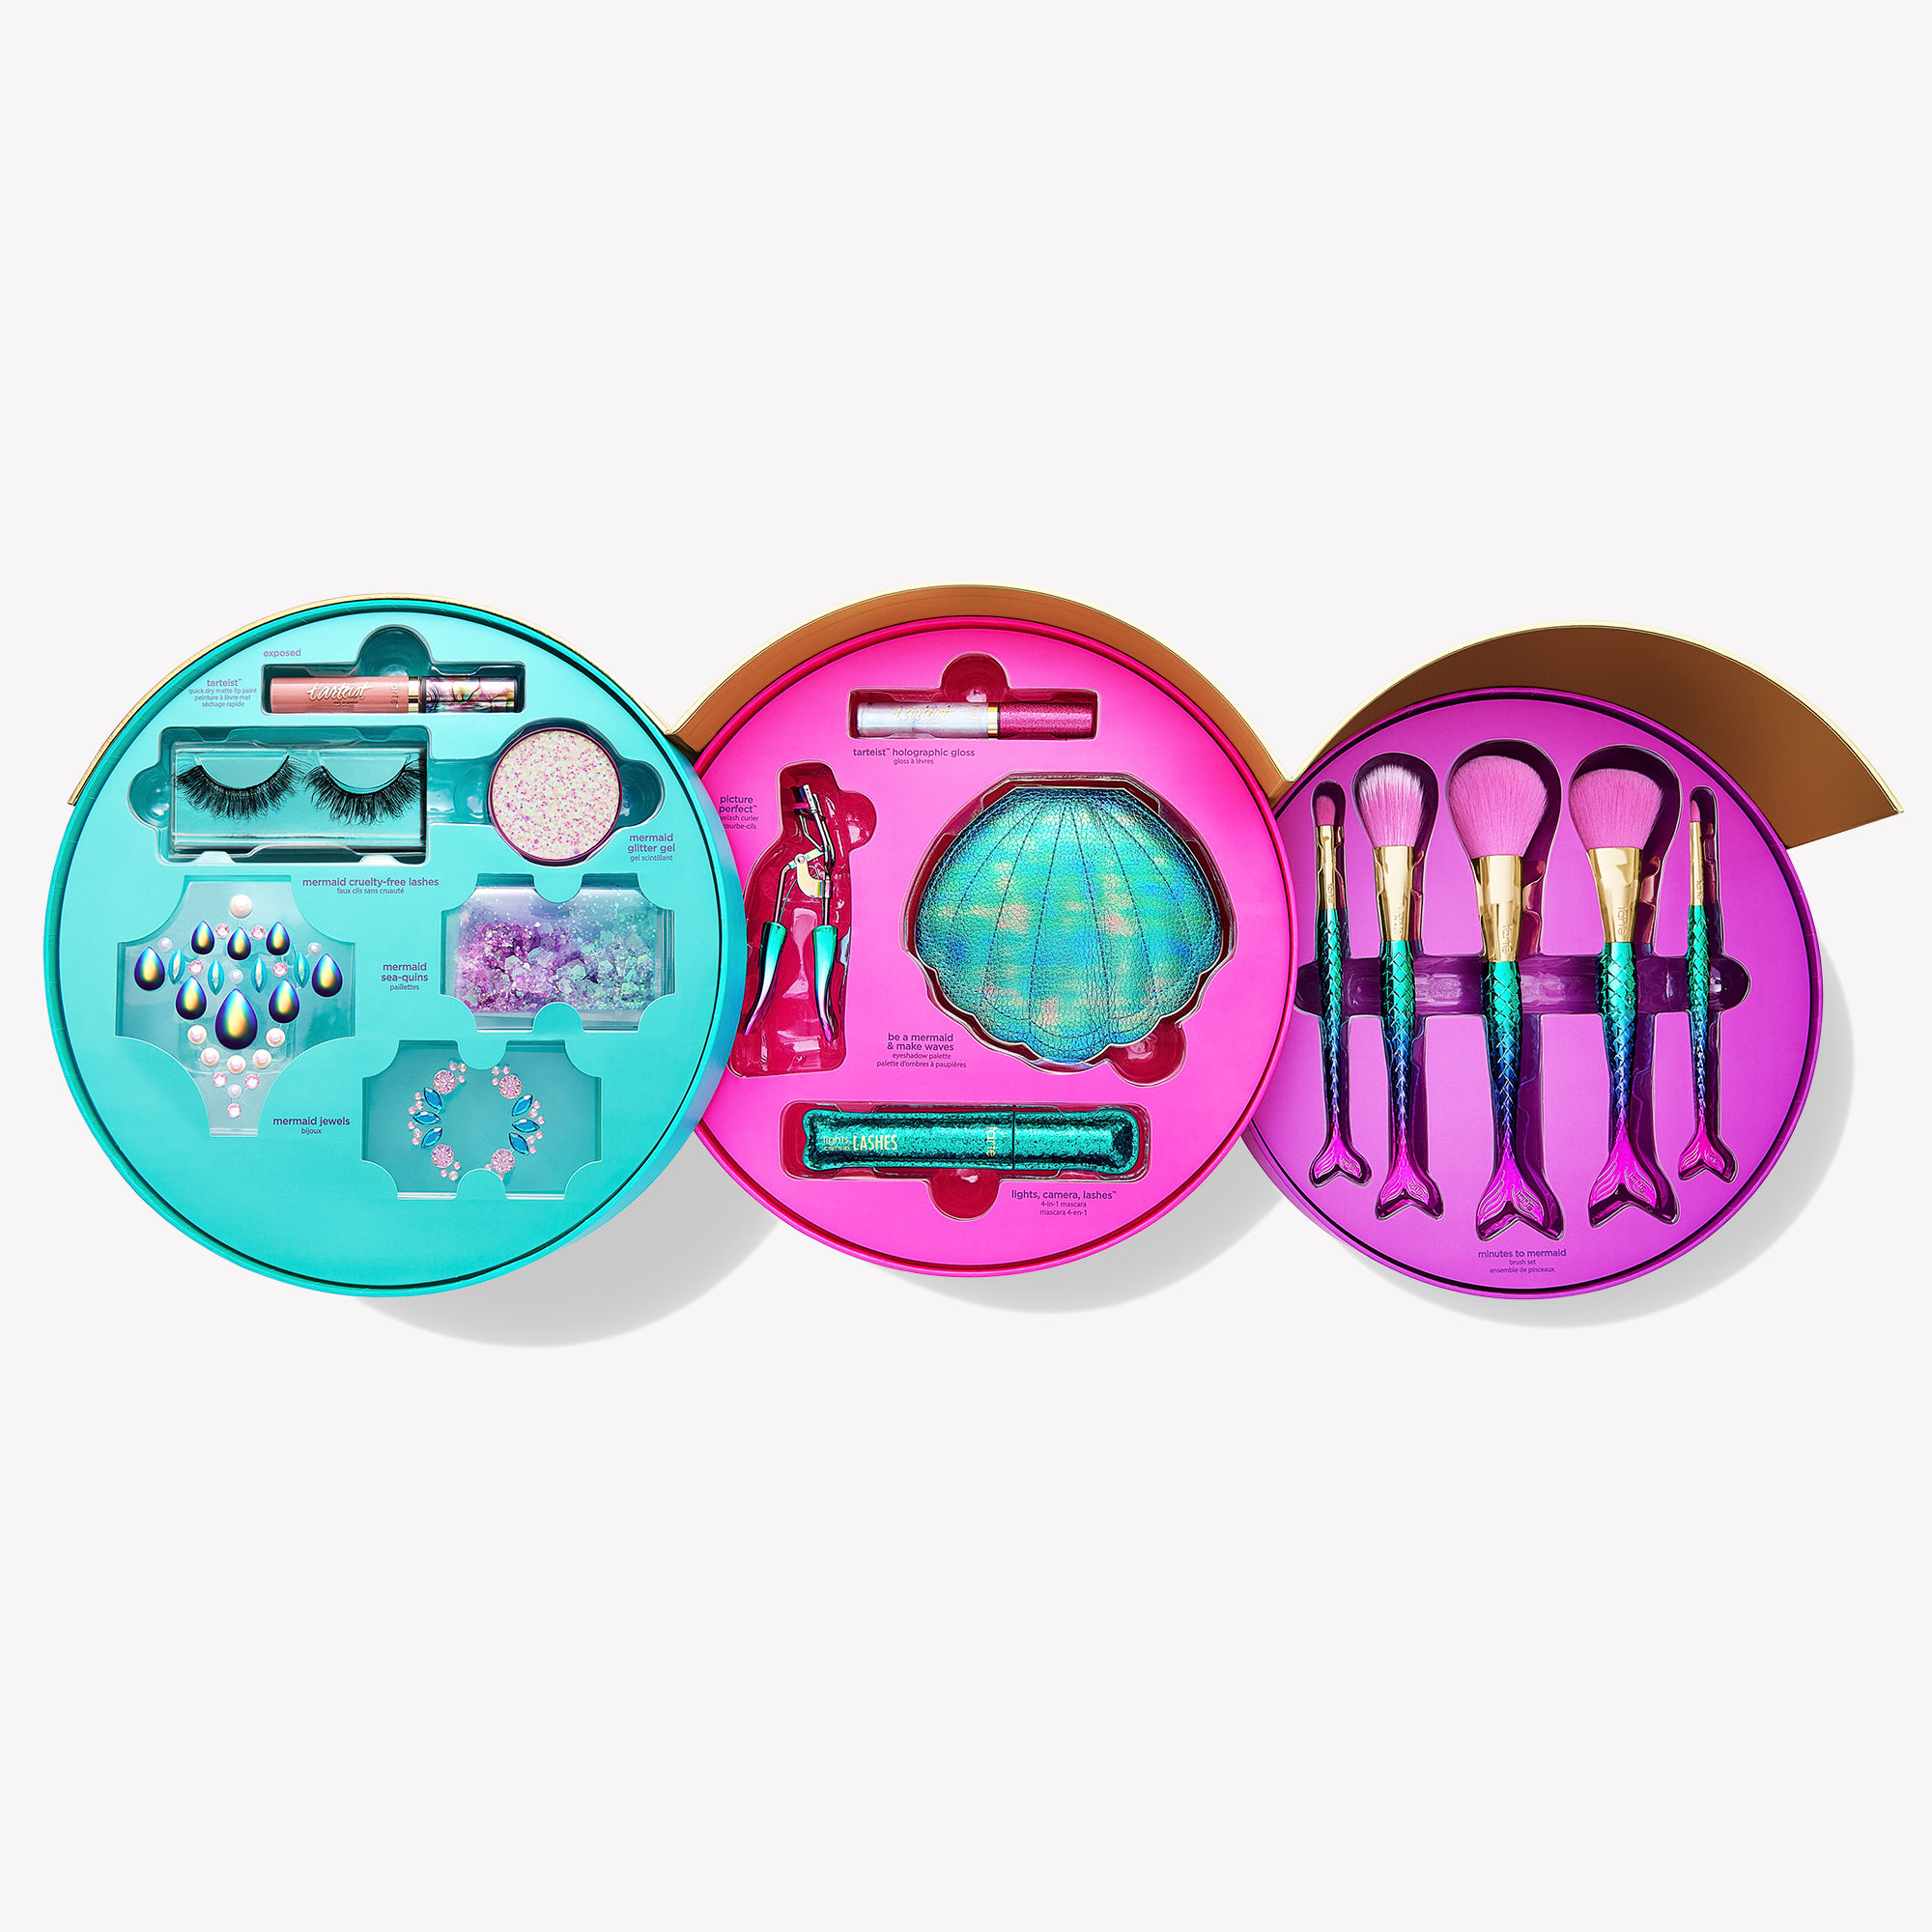 As part of this collection, you'll be able to find the Minutes to Mermaid Brush Set, which features five colorful brushes with handles shaped like mermaid tails; the Mermaid Glitter Gel, which